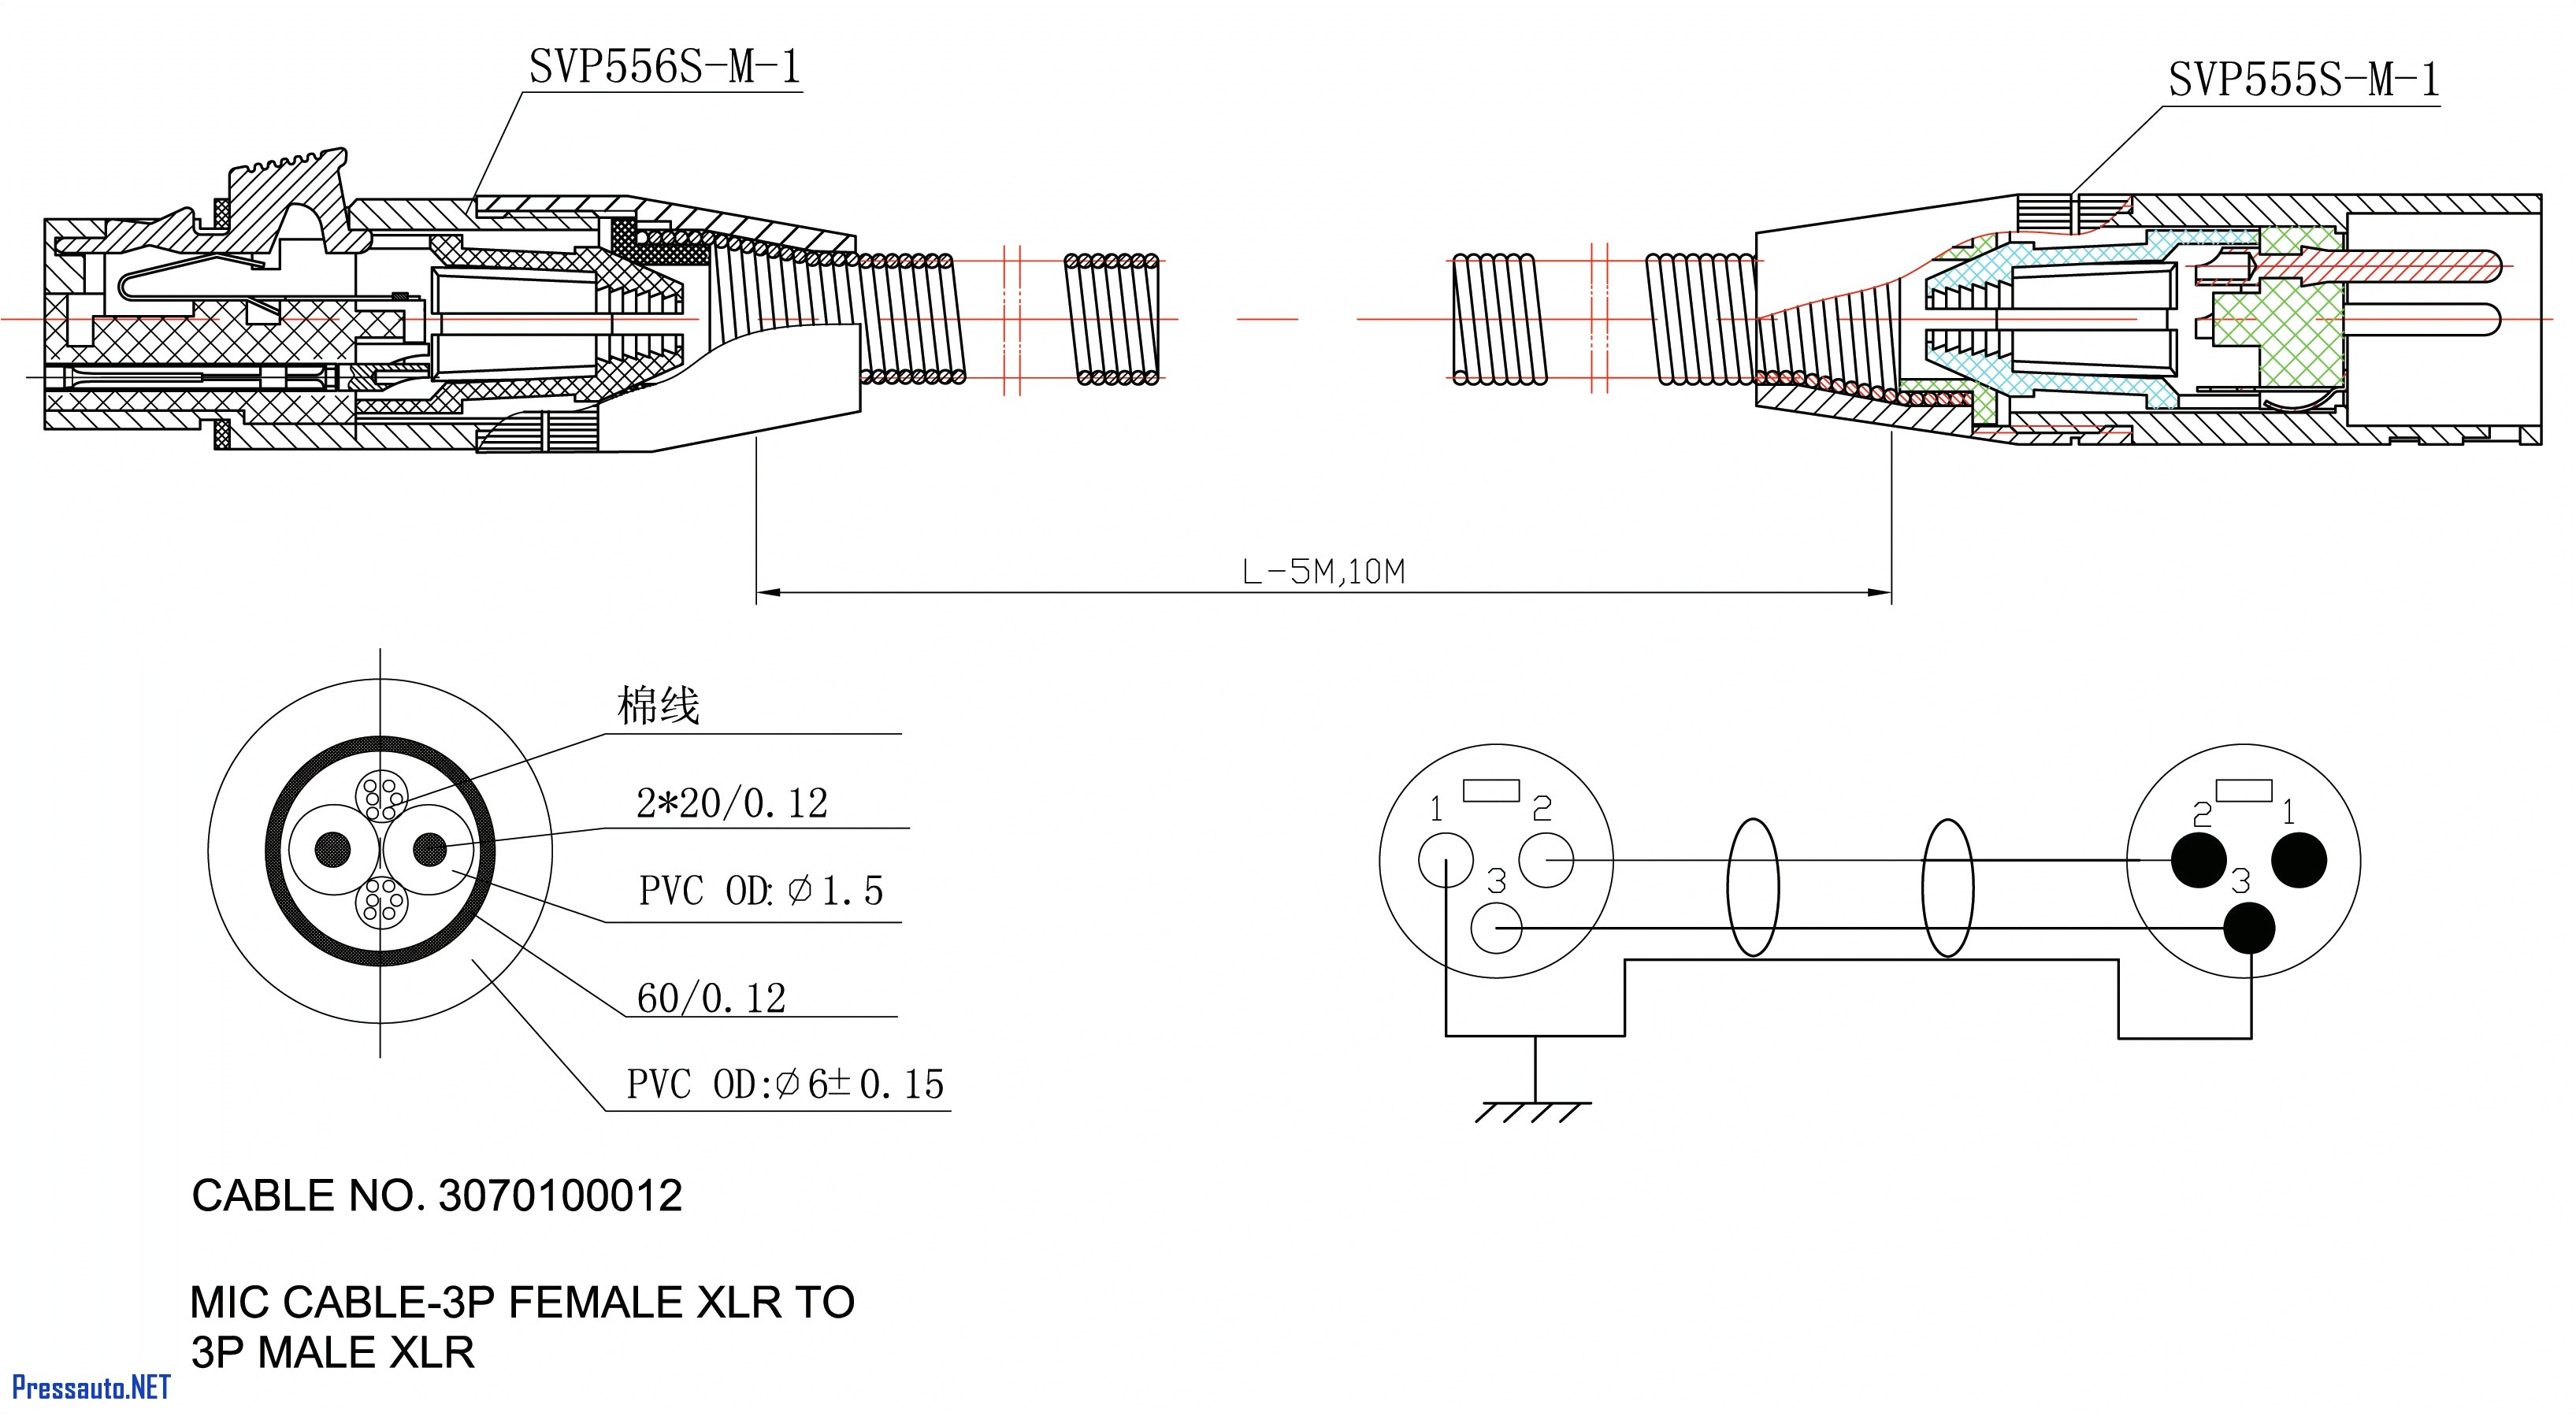 ford circle wiring wiring diagram article review ford circle wiring